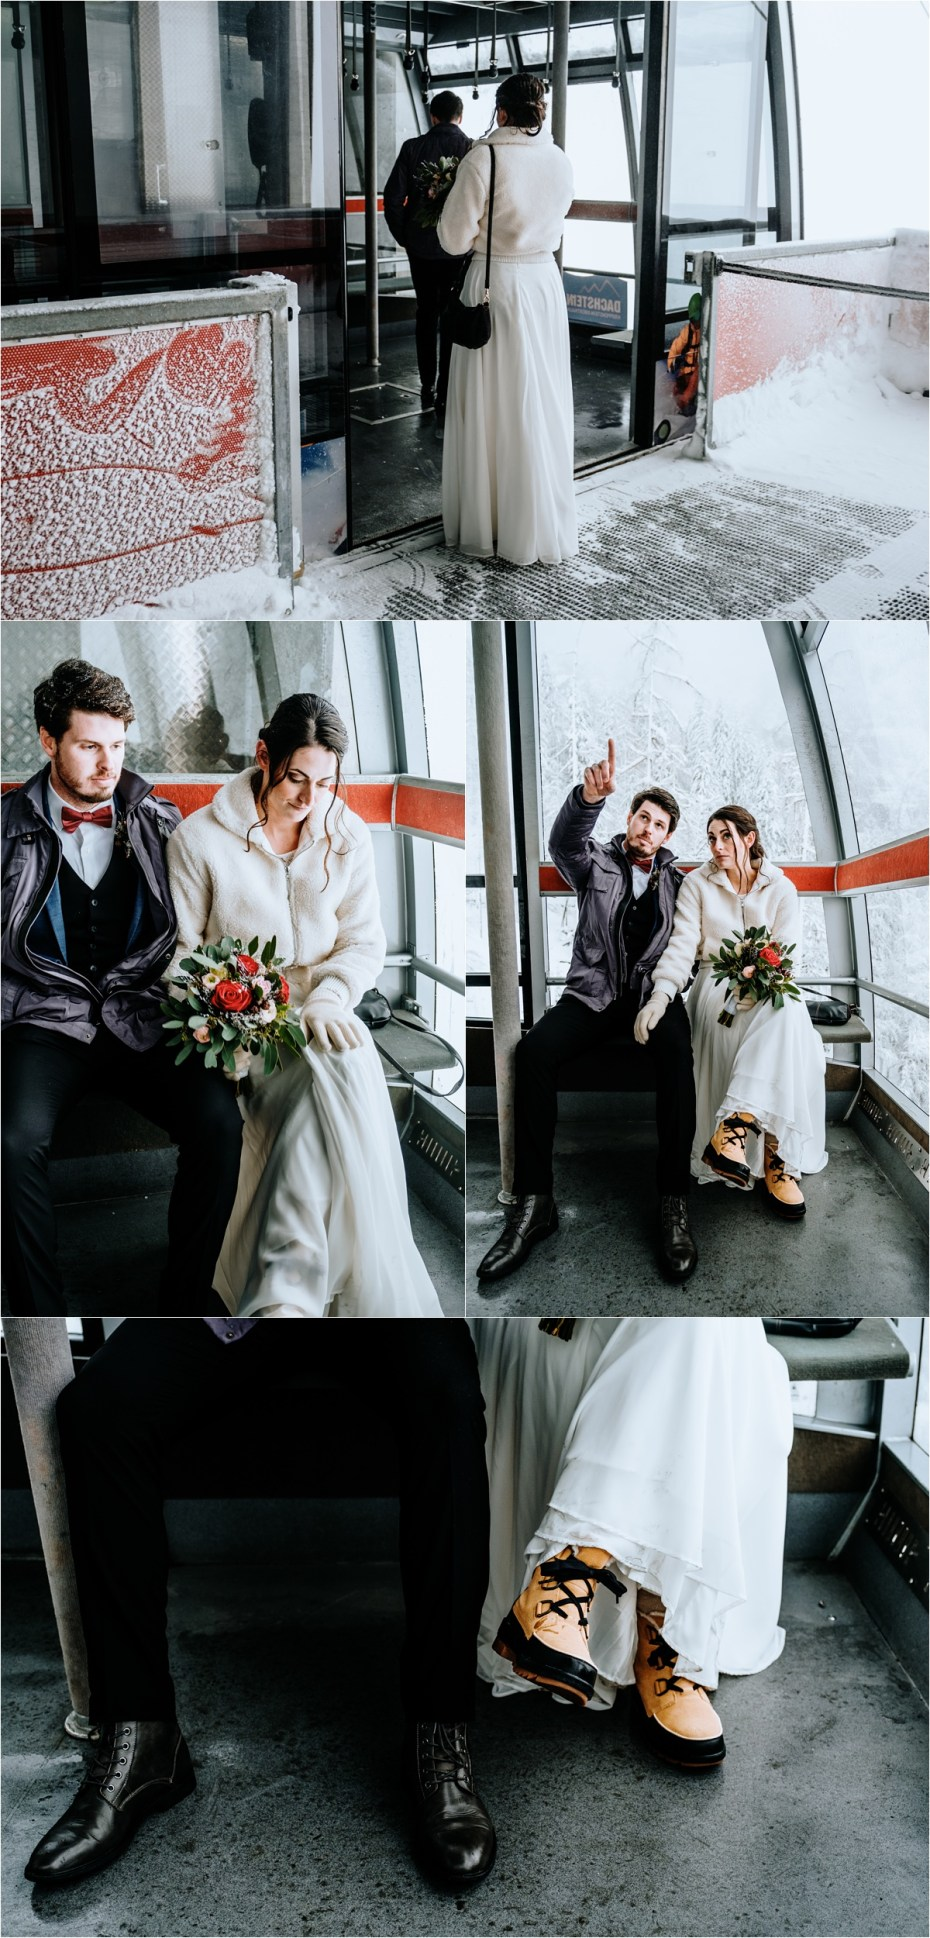 Bride and groom in the Dachstein Krippenstein cable car. Photos by Wild Connections Photography